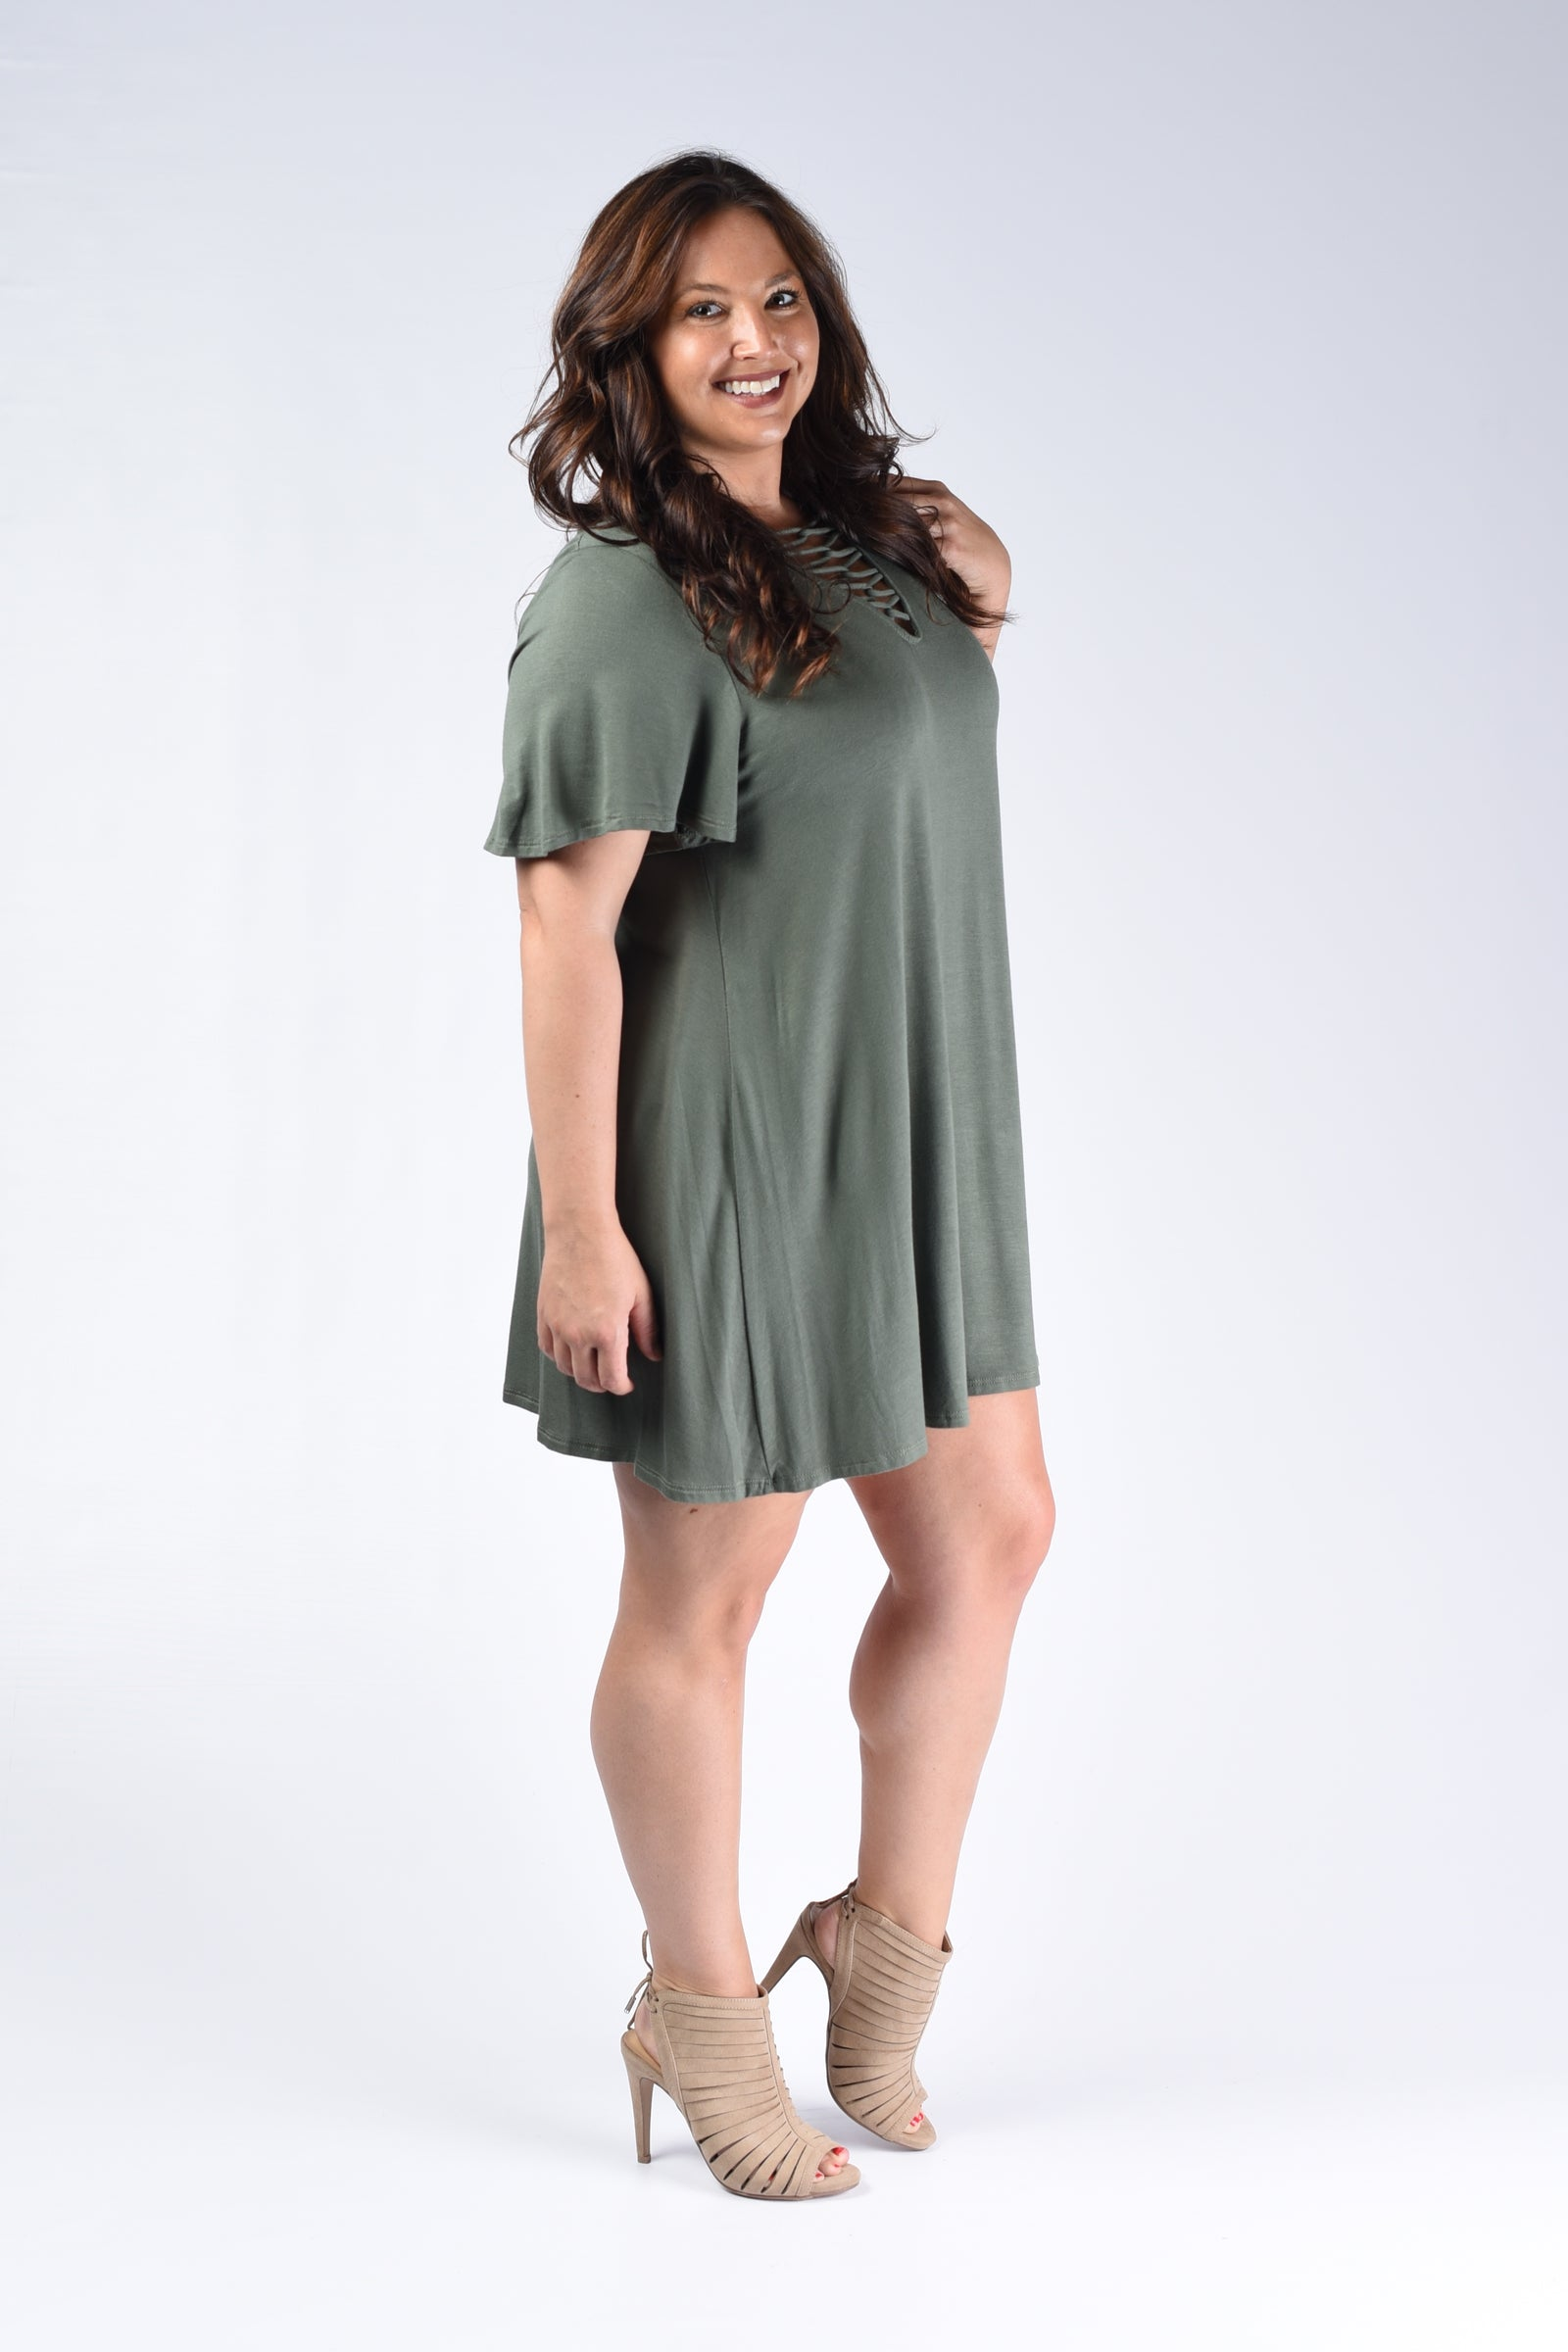 Olive Corset Tunic Top - www.mycurvystore.com - Curvy Boutique - Plus Size